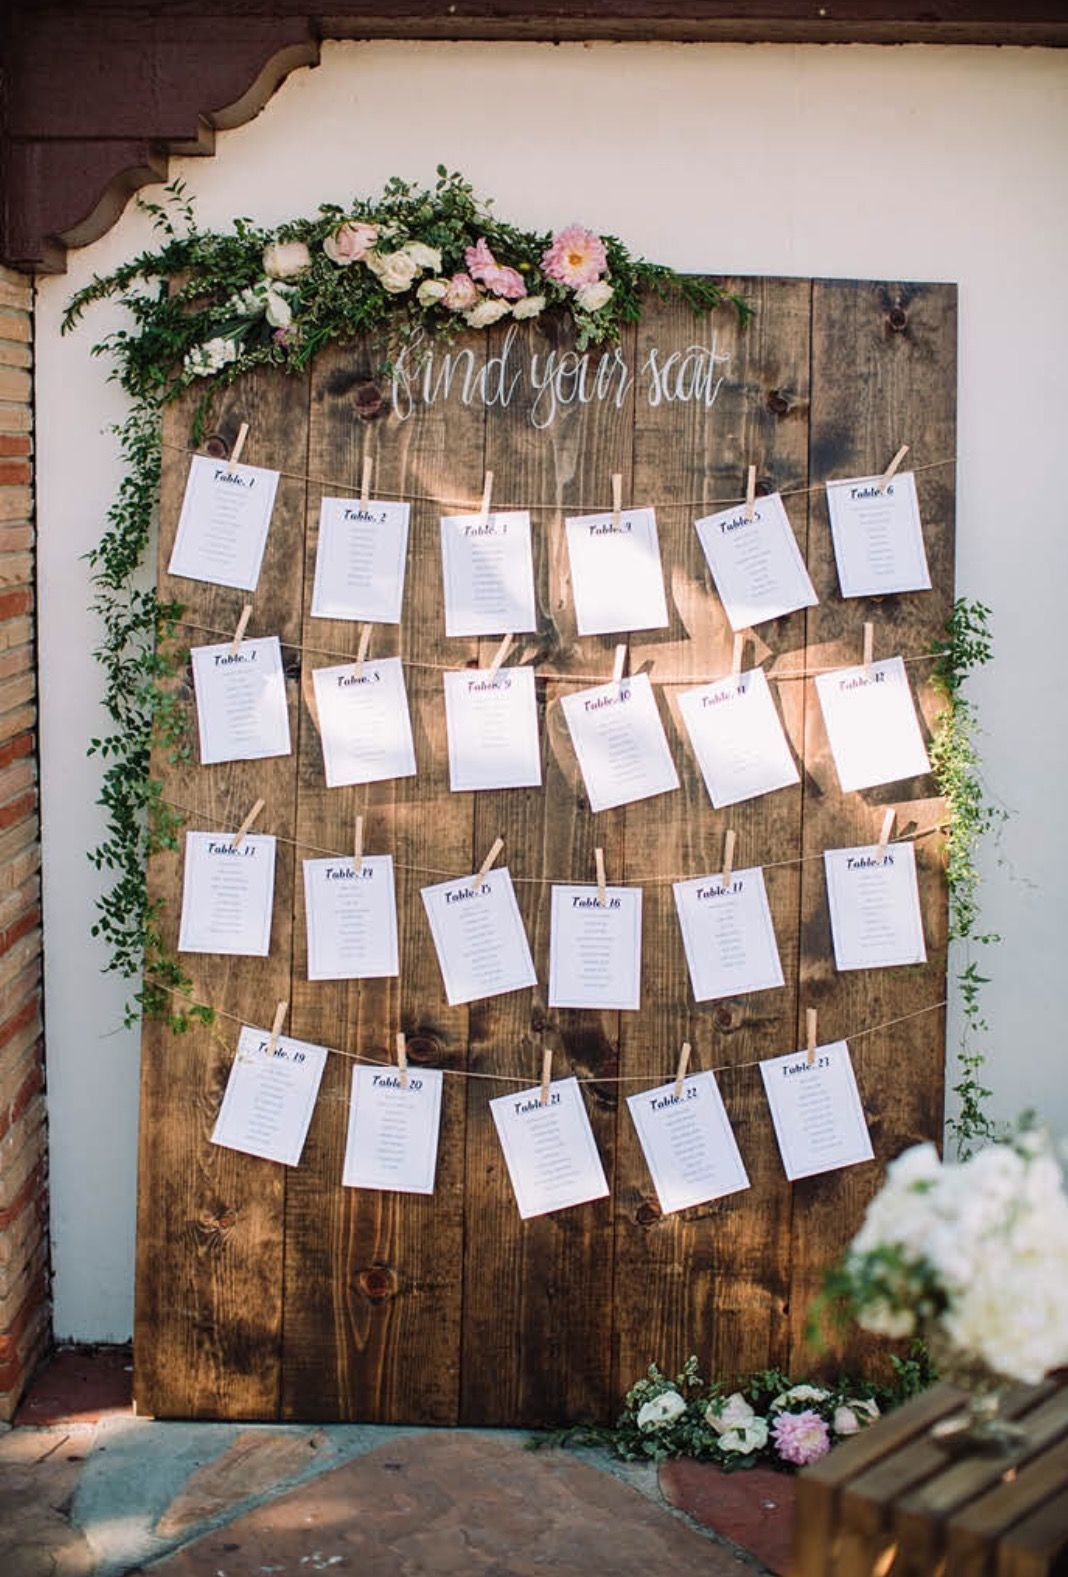 Miscellaneavintagerentals com wedding seating chart ideas large